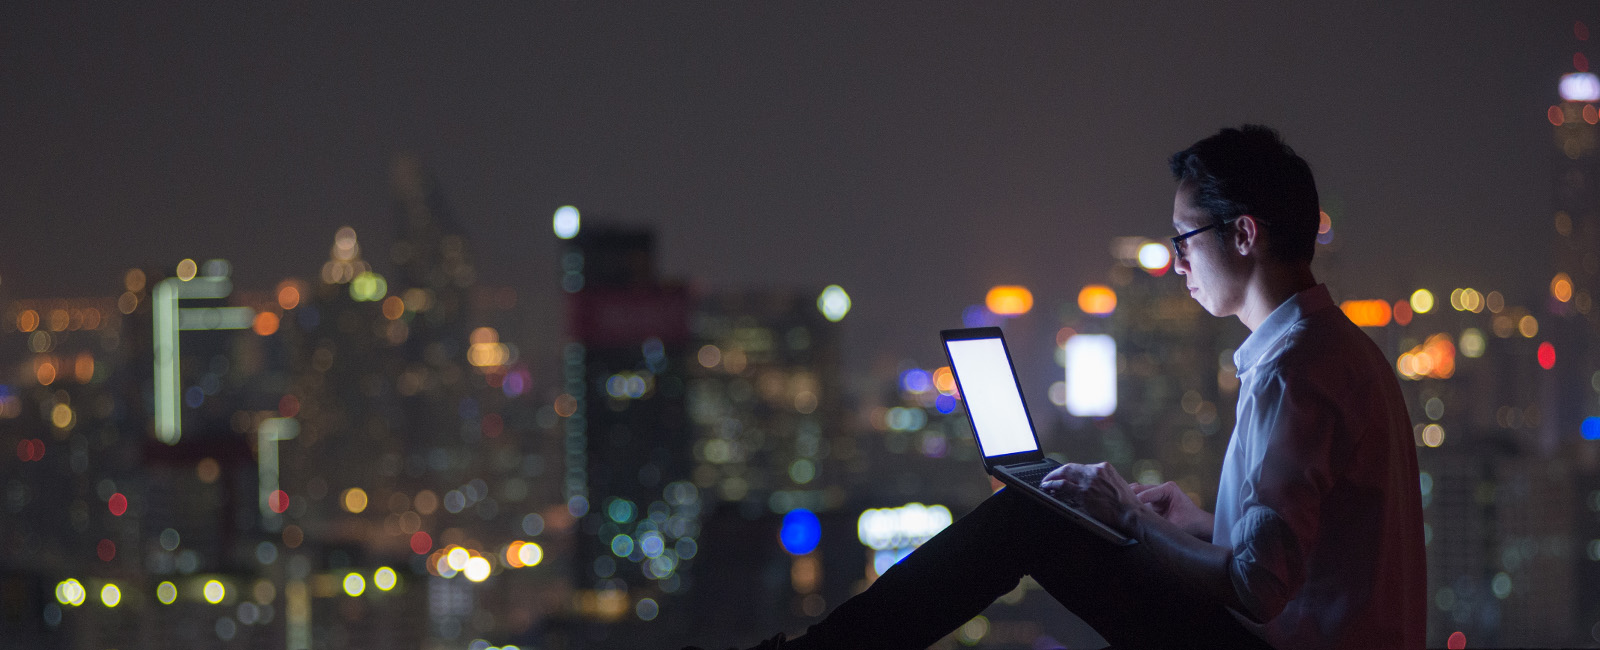 Wide shot of man on his laptop at night with city skyline in background